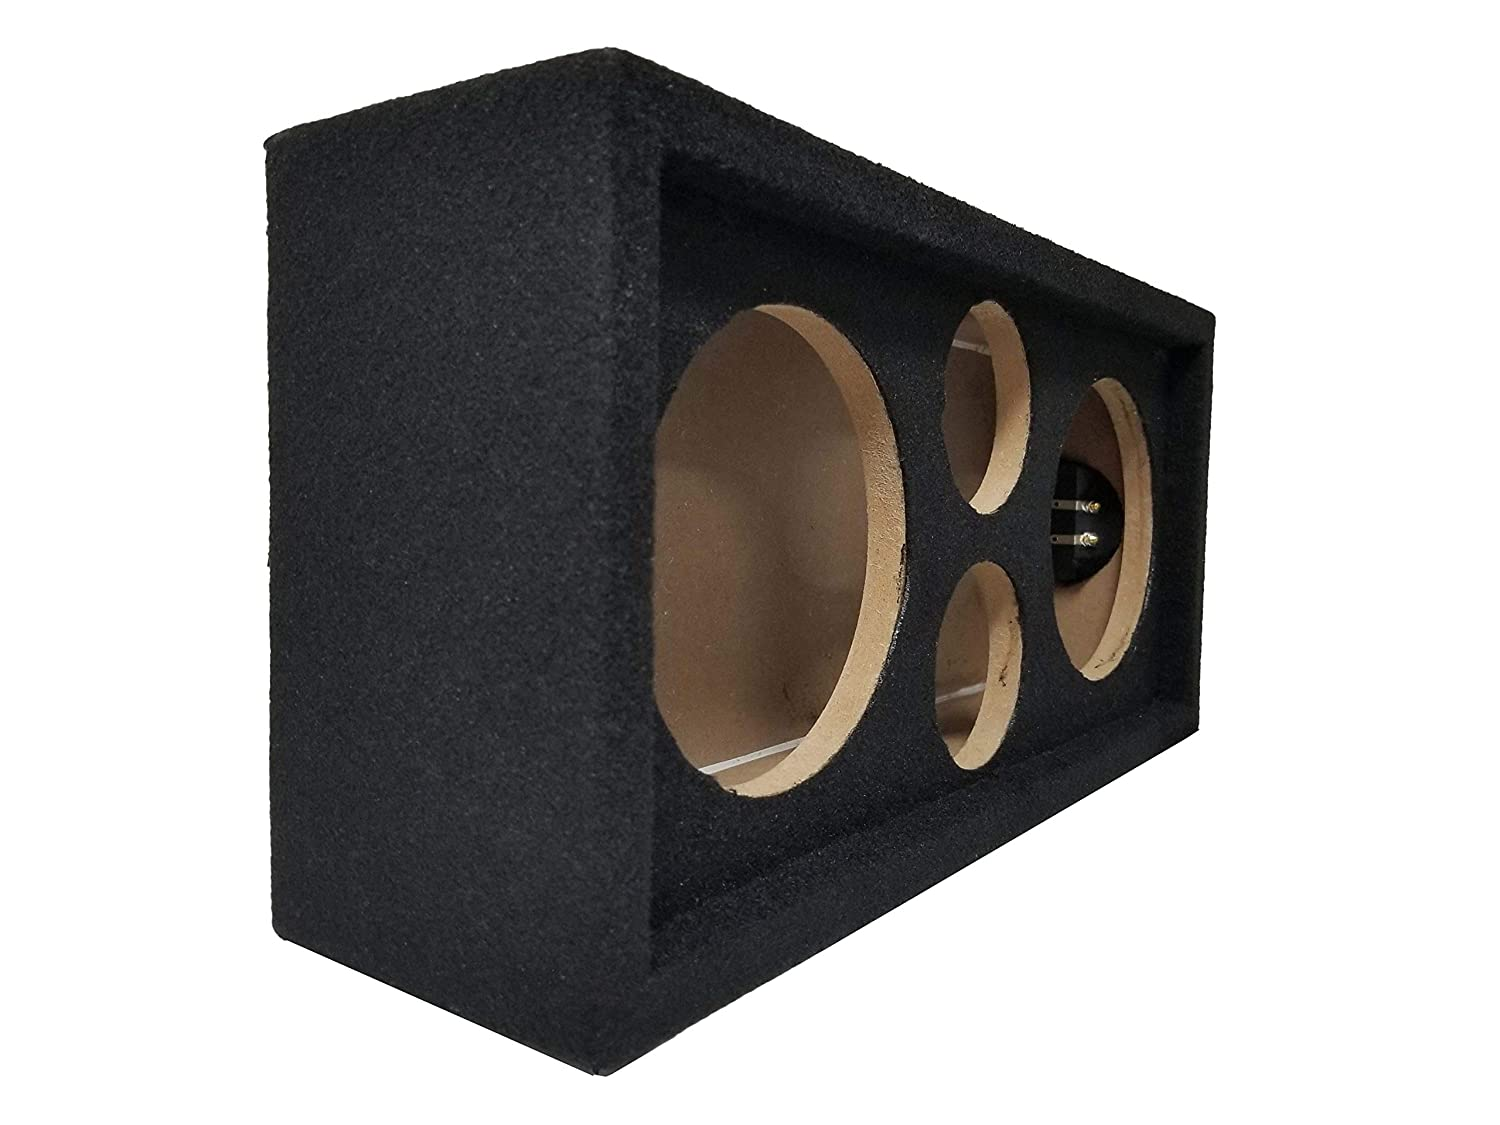 Car Aduio Installations BRCH6, Black Bass Rockers Chuchero Boxed for Voice Speakers and Tweeters